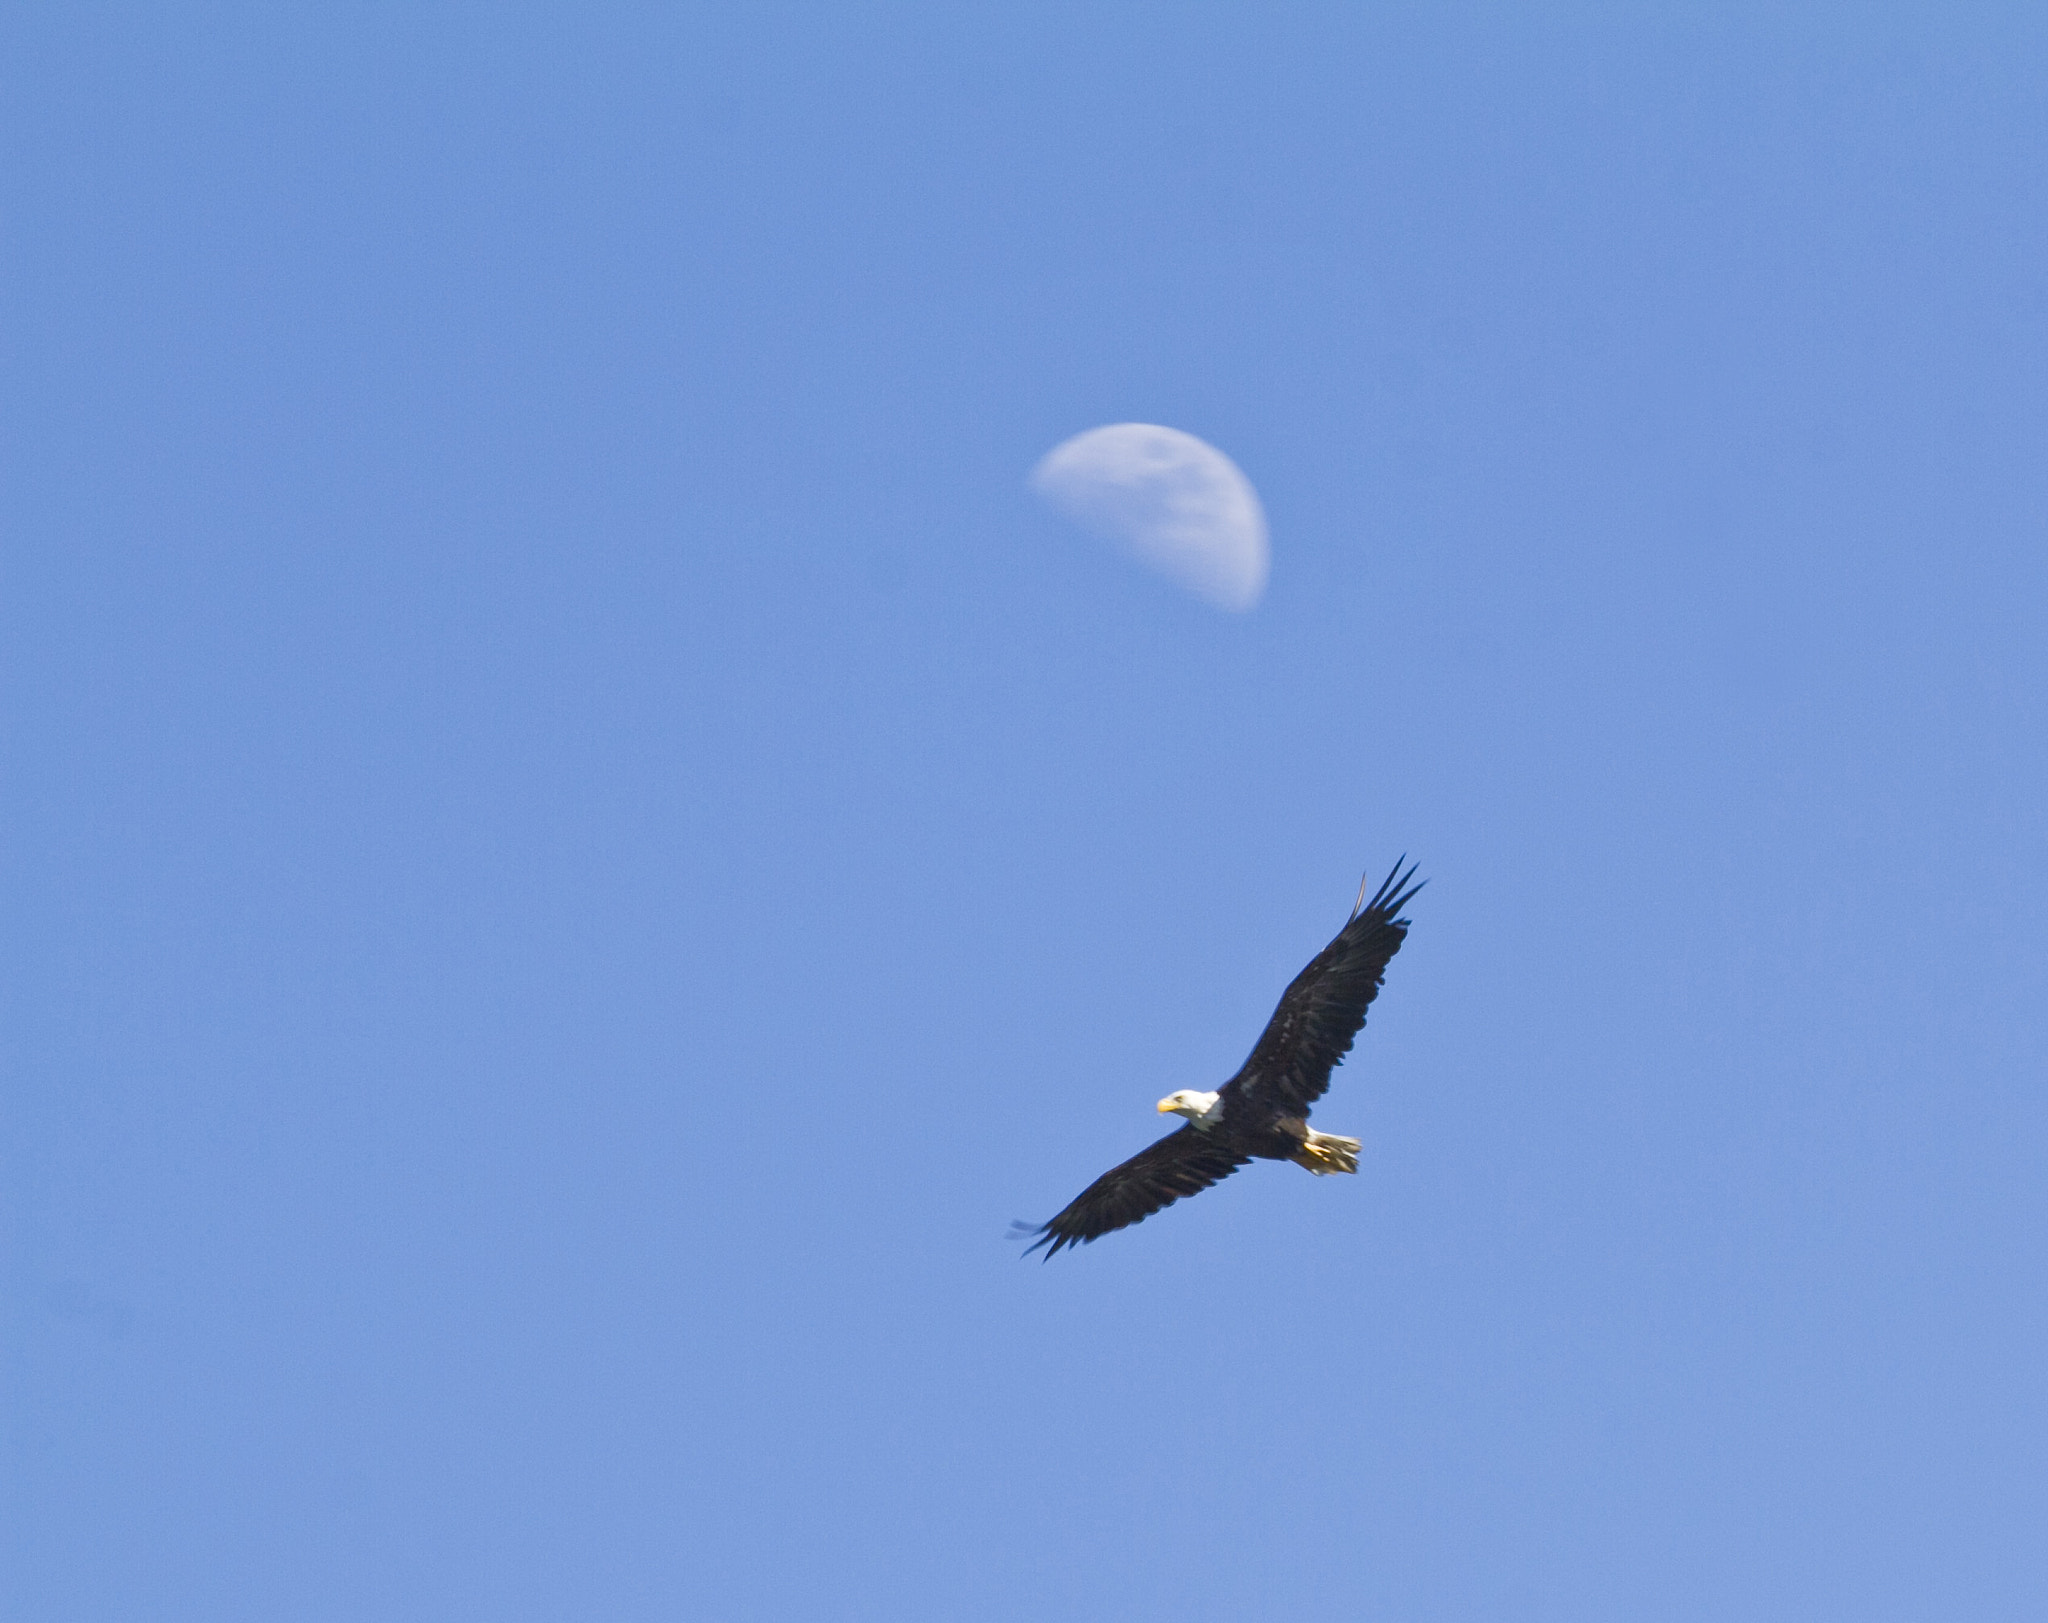 Photograph Lunar Eagle by Robert Evans on 500px